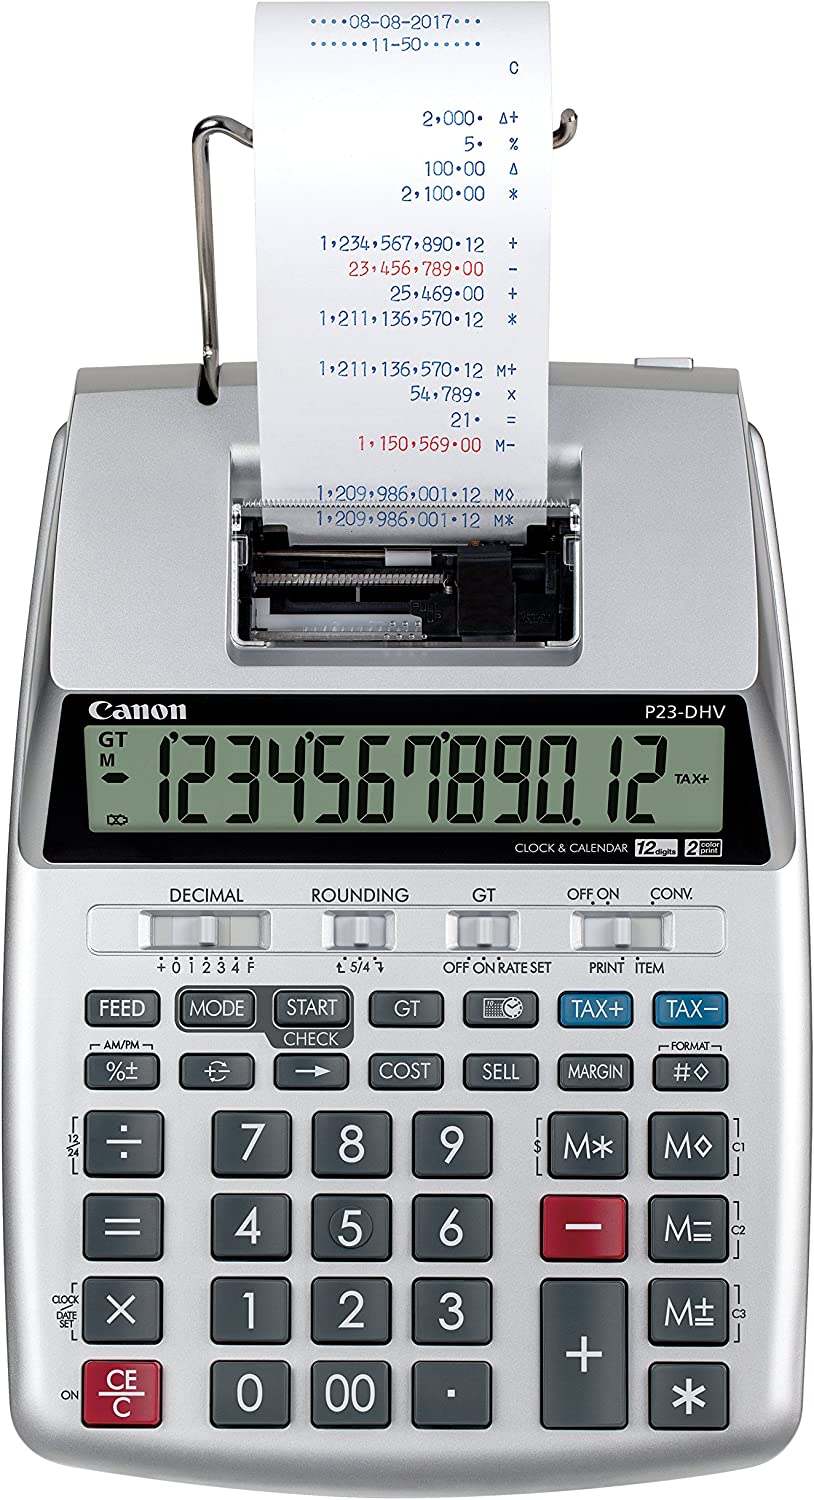 Canon P23-DHV-3 Printing Calculator with Double Check Function, Tax Calculation and Currency Conversion